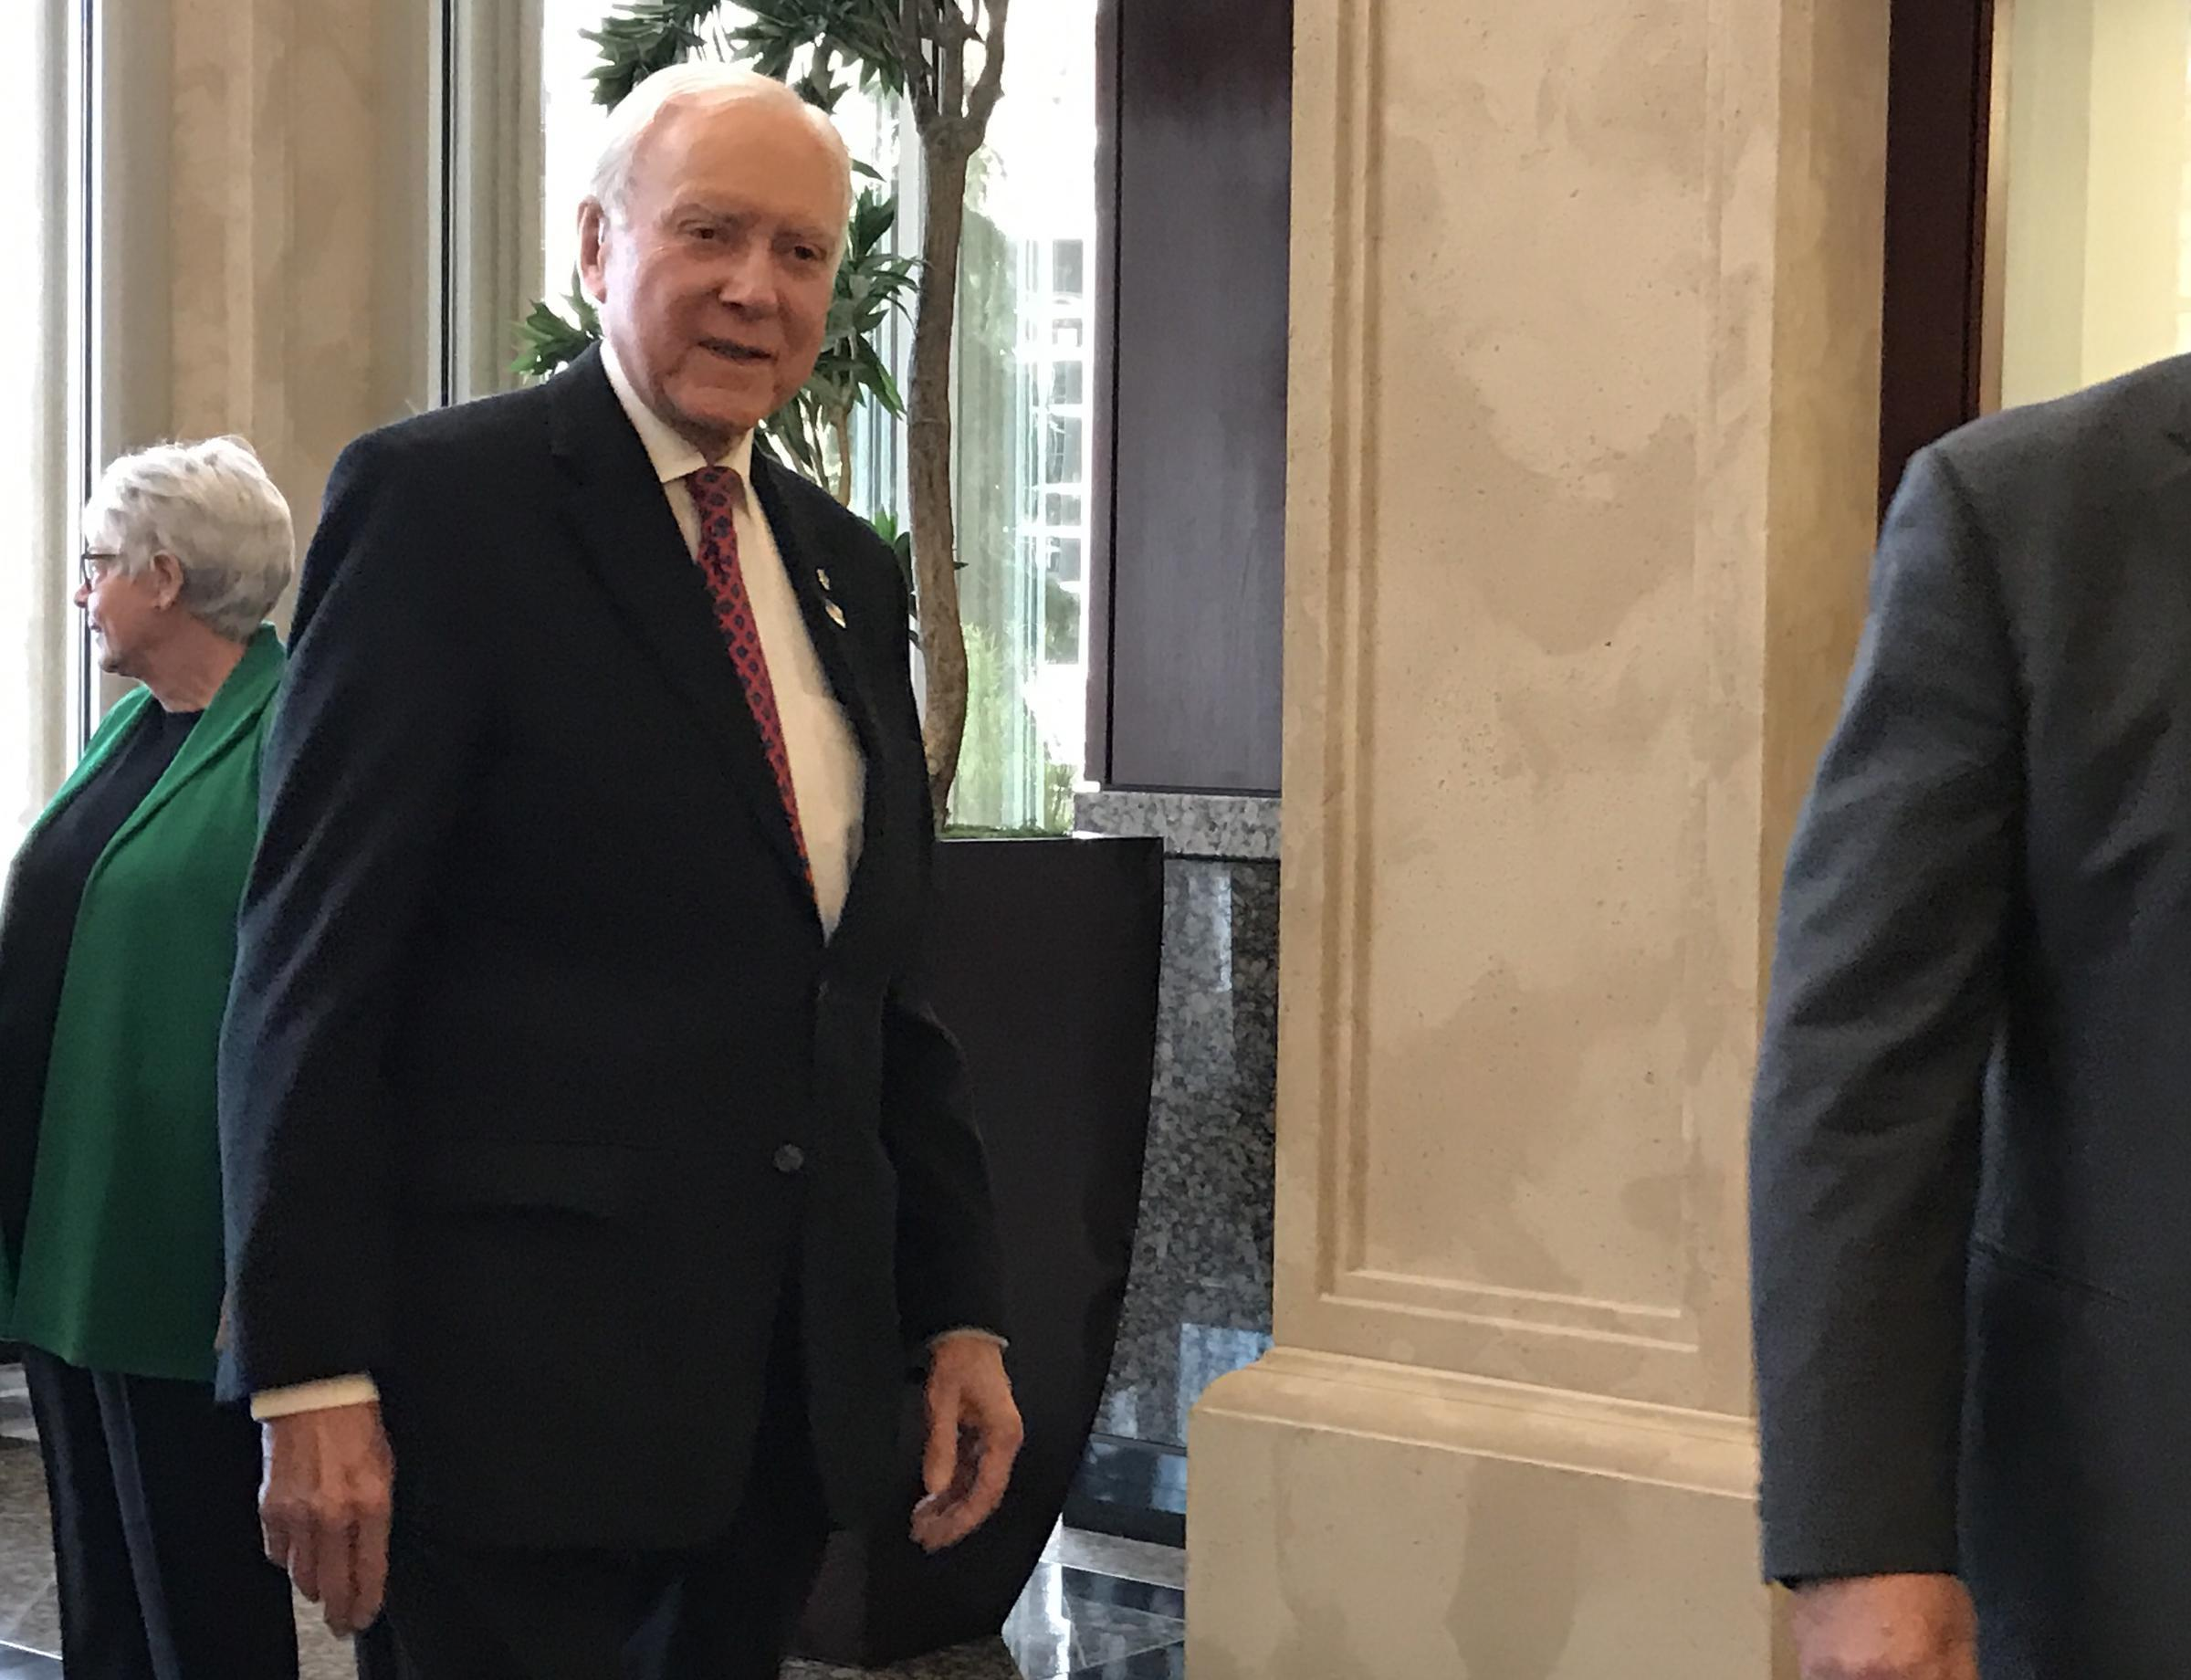 Hatch Still Coy On Retirement Plans As Romney Rumors Swirl